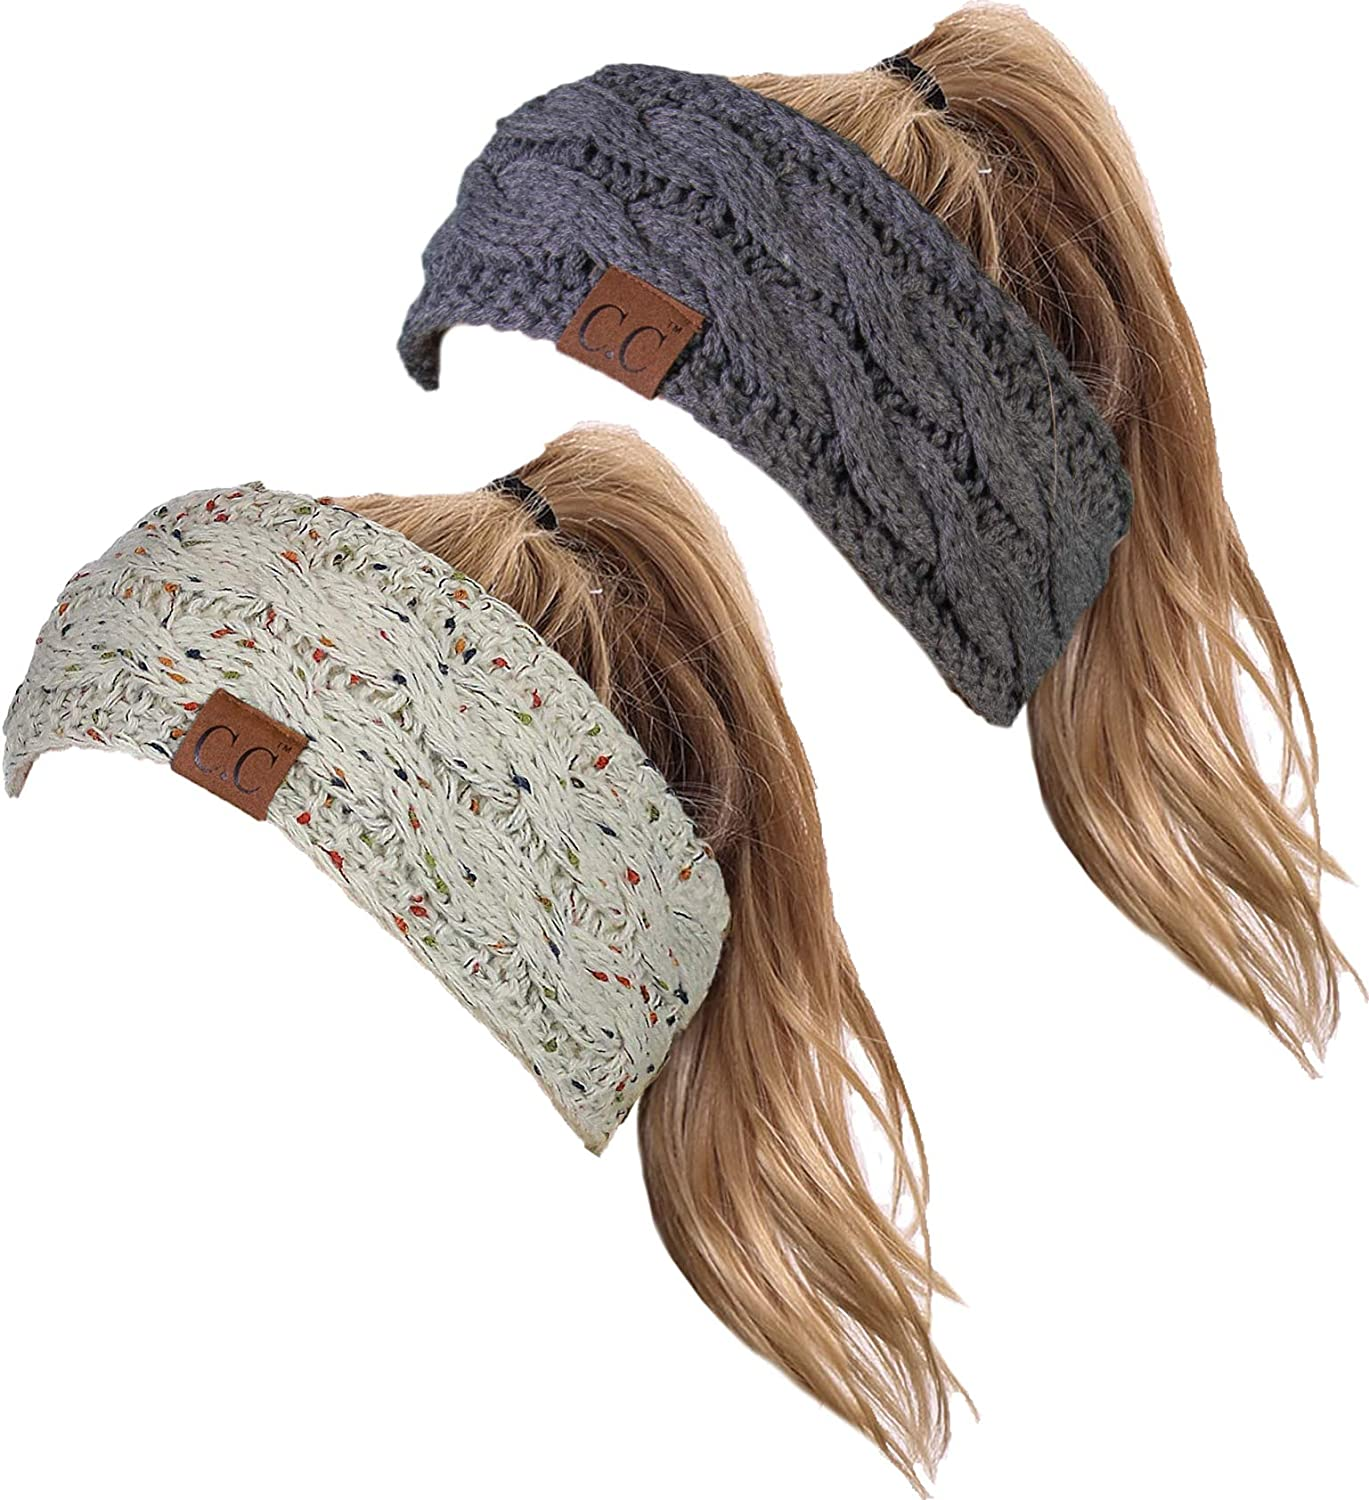 HW-6033-2-67-20a70 Headwrap Bundle - Oatmeal & Solid Charcoal (2 Pack)